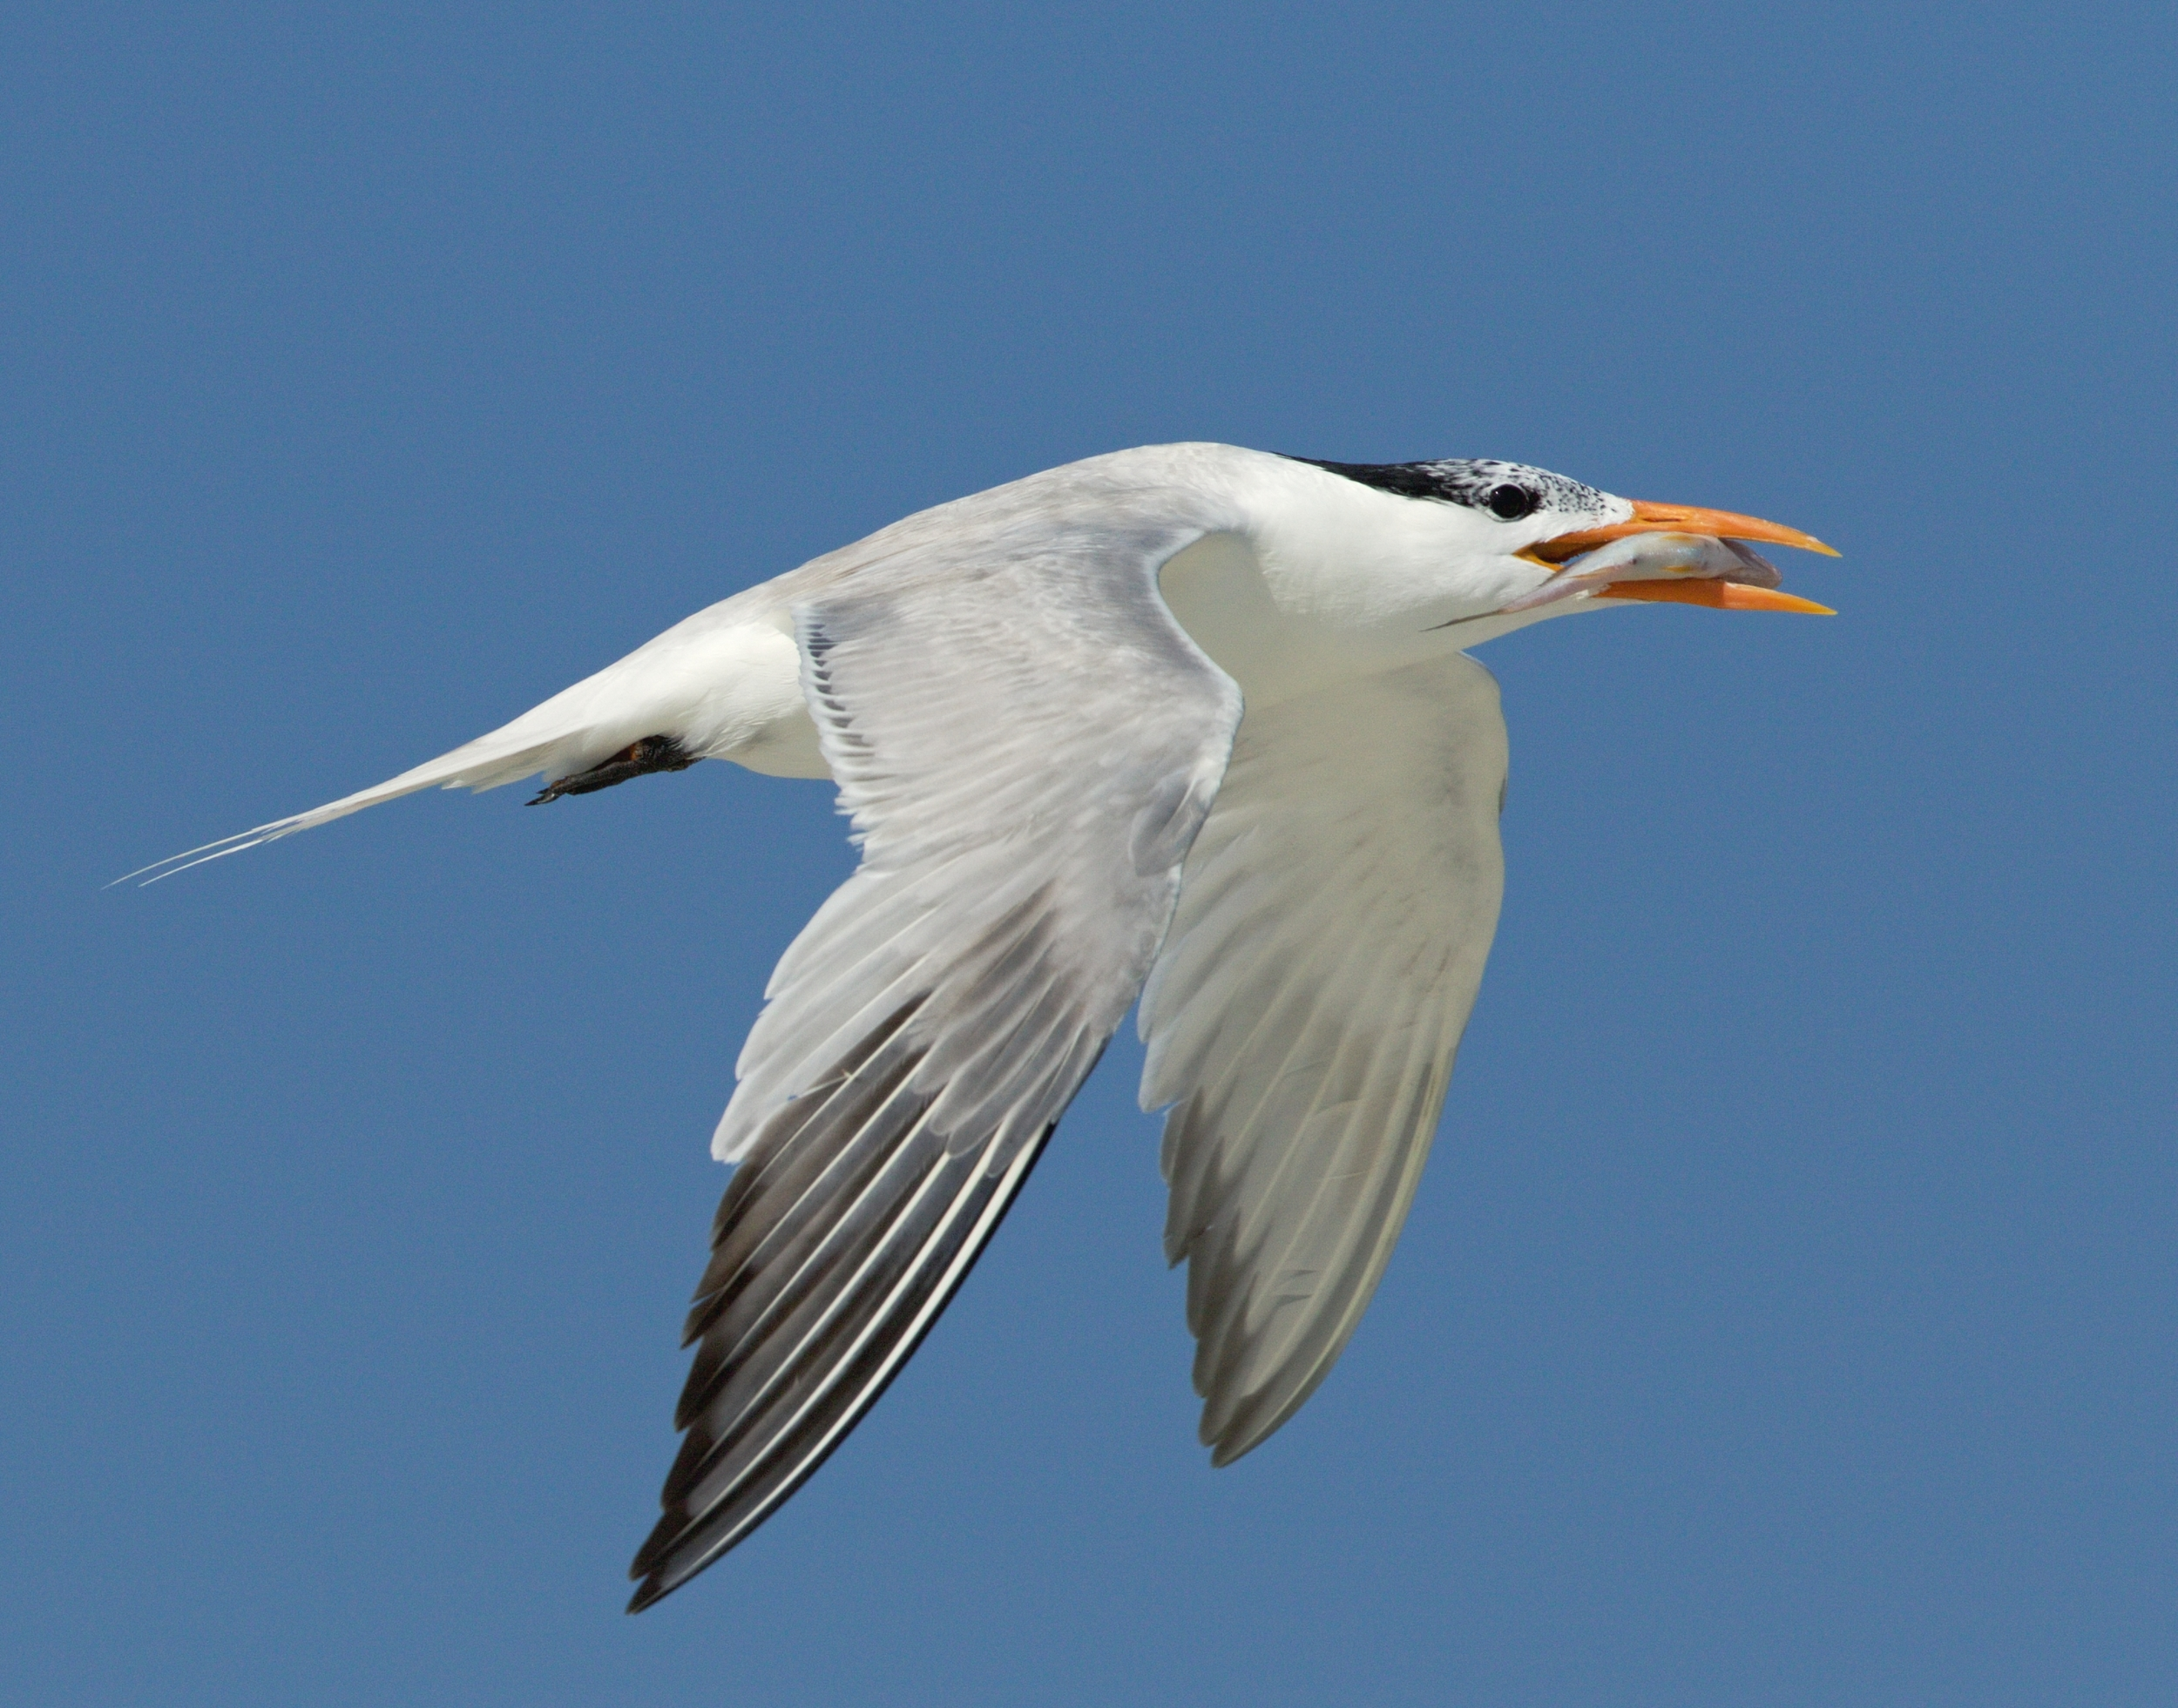 The parent Royal Terns bring in lots of food for the hungry chicks